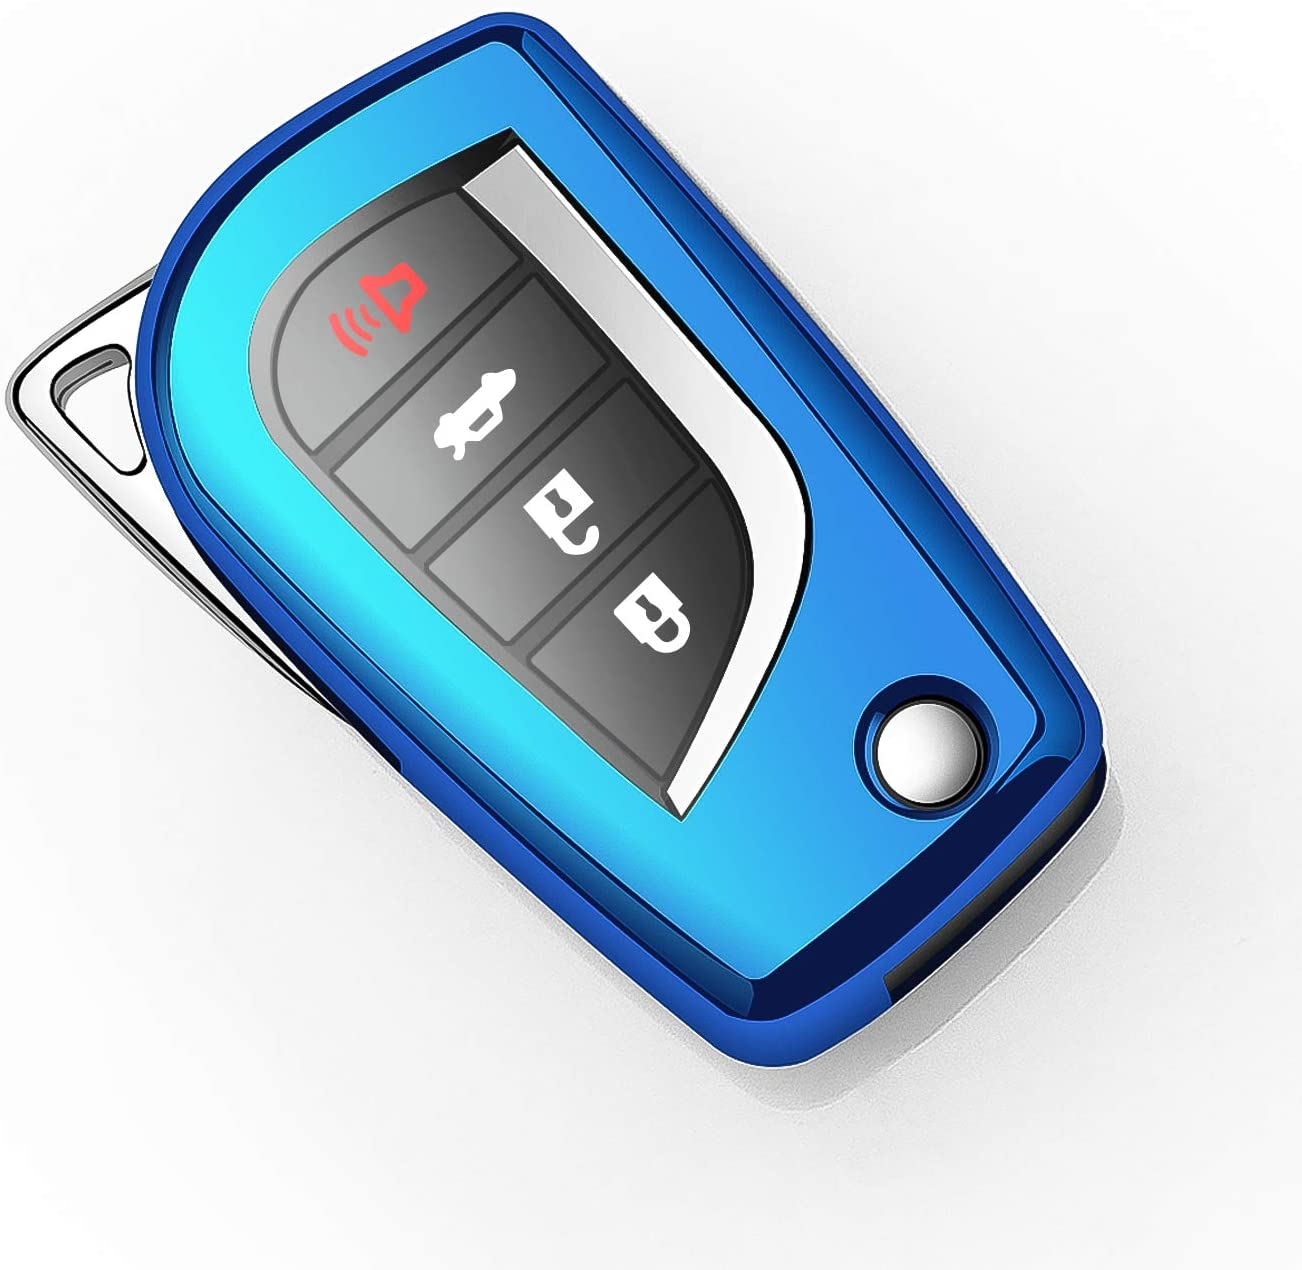 Autophone for Toyota Key Fob Cover with Keychain Soft TPU 360 Degree Protection Key Case Compatible with Toyota Fortuner tundra Camry RAV4 Highlander Corolla Smart Key Blue